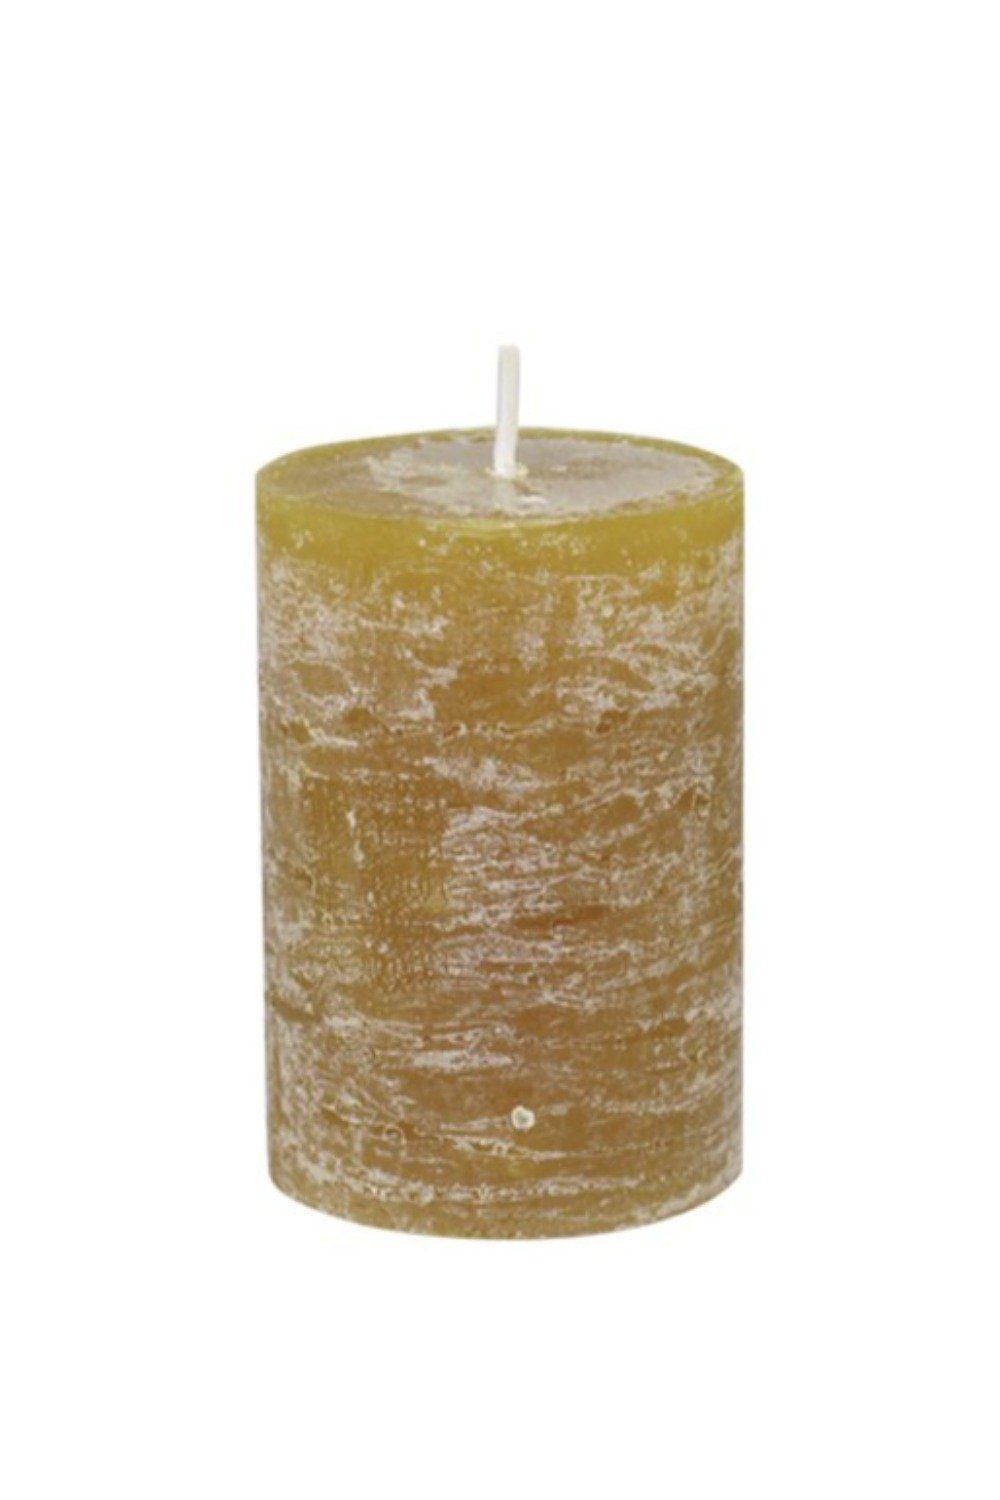 Rustic Pillar Candle - Mustard Candles & Fragrance Blume 10x7cm